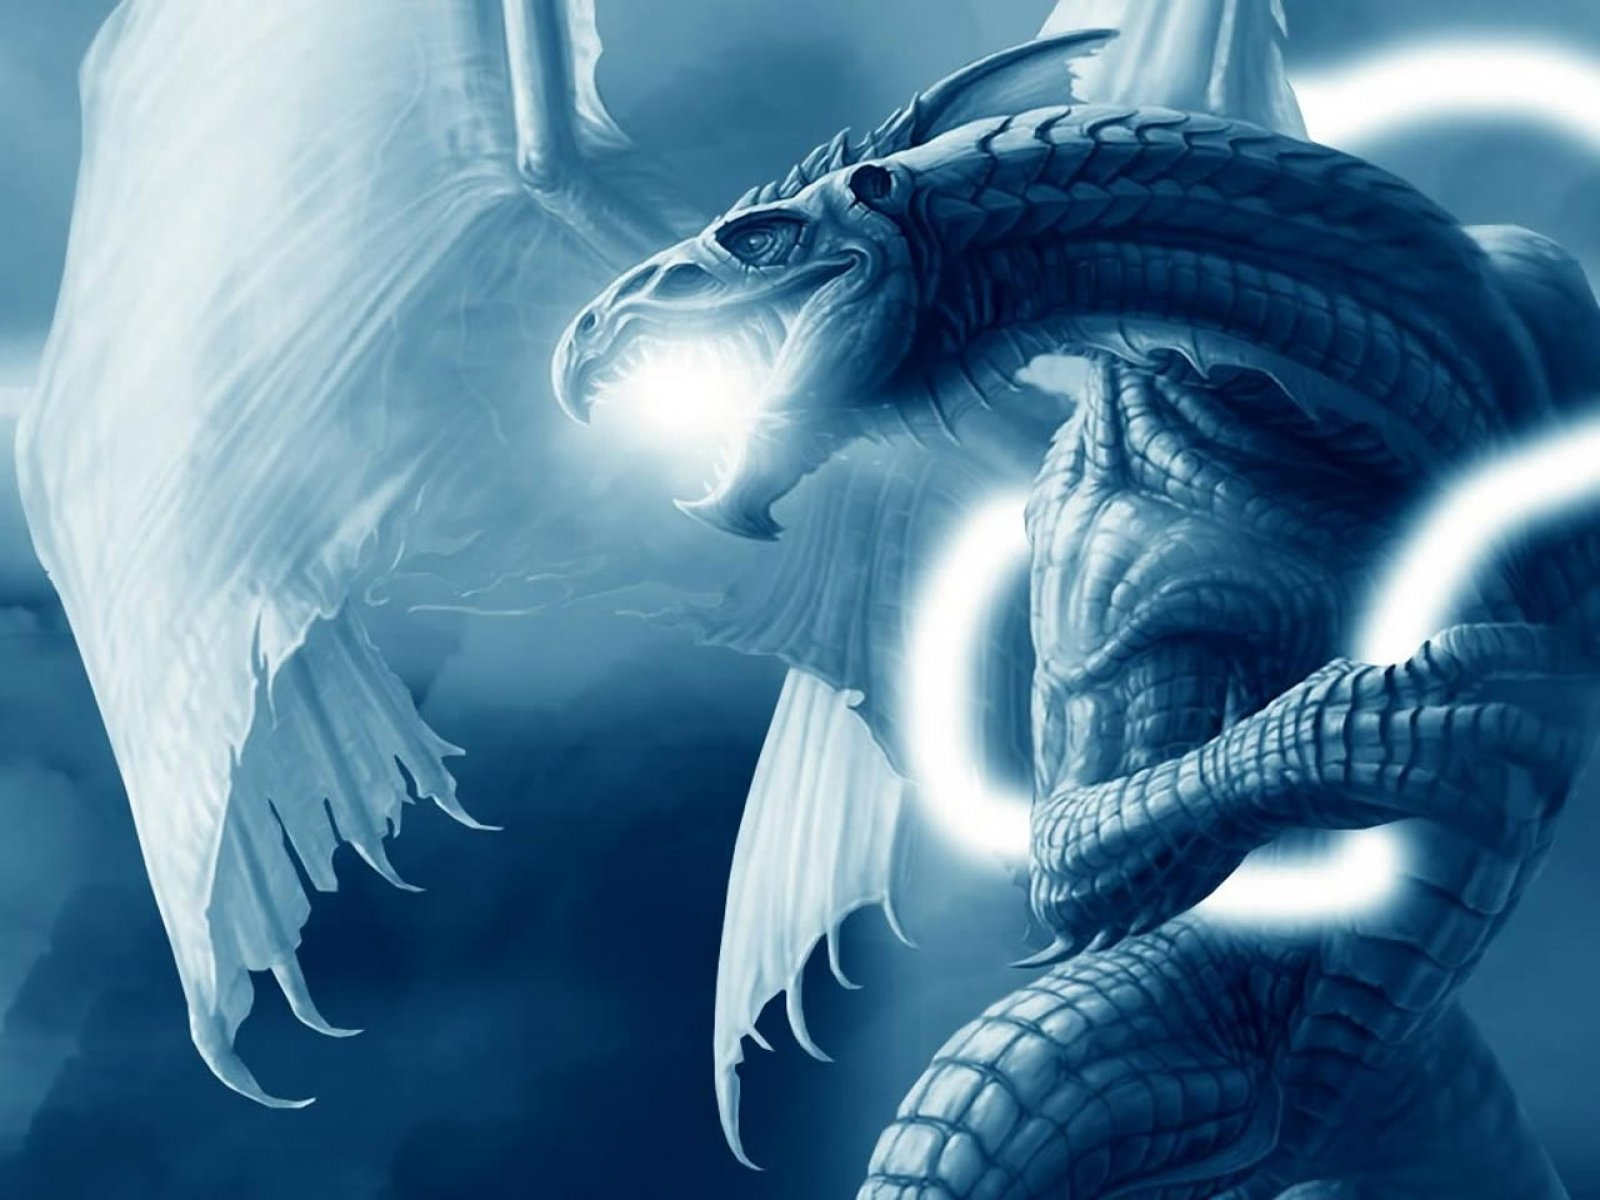 Blue Dragon Wallpapers - HD Wallpapers and Pictures | Dragon Art